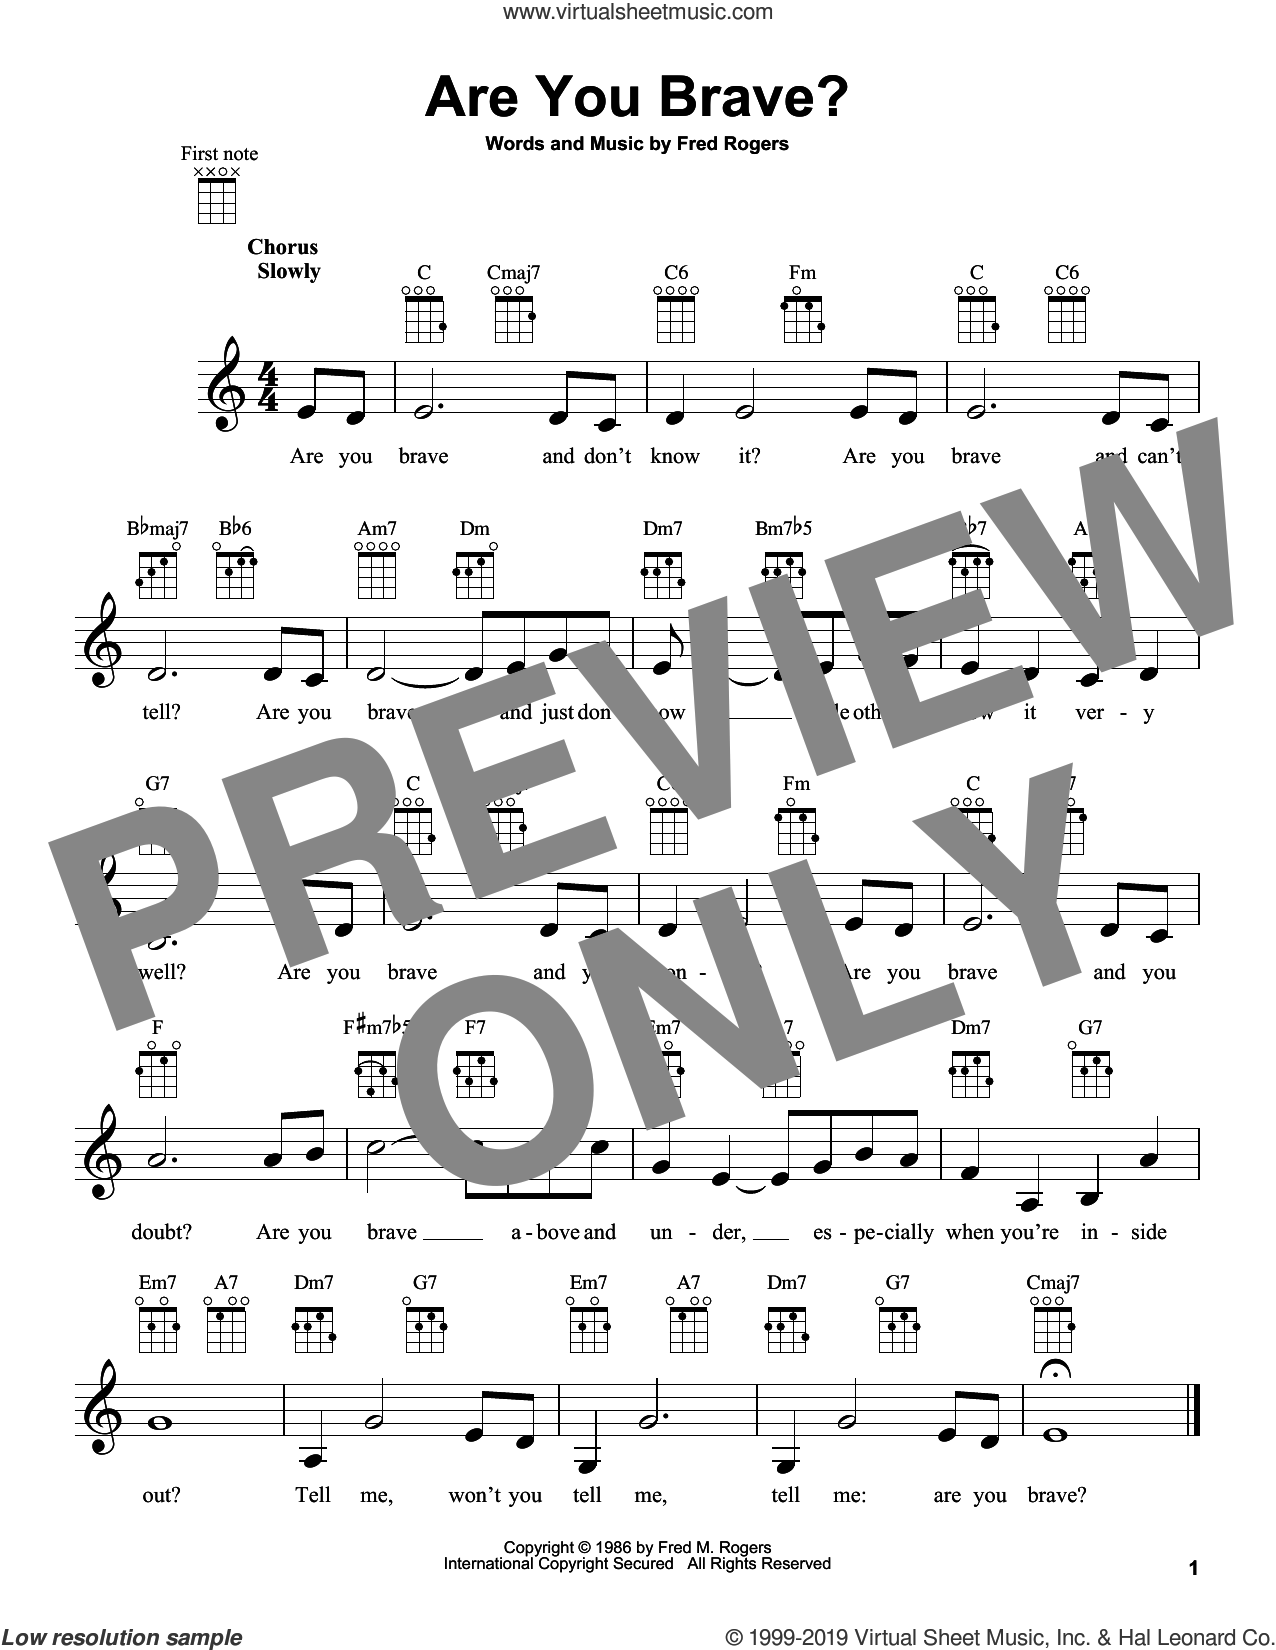 Are You Brave? (from Mister Rogers' Neighborhood) sheet music for ukulele by Fred Rogers and Mister Rogers, intermediate skill level